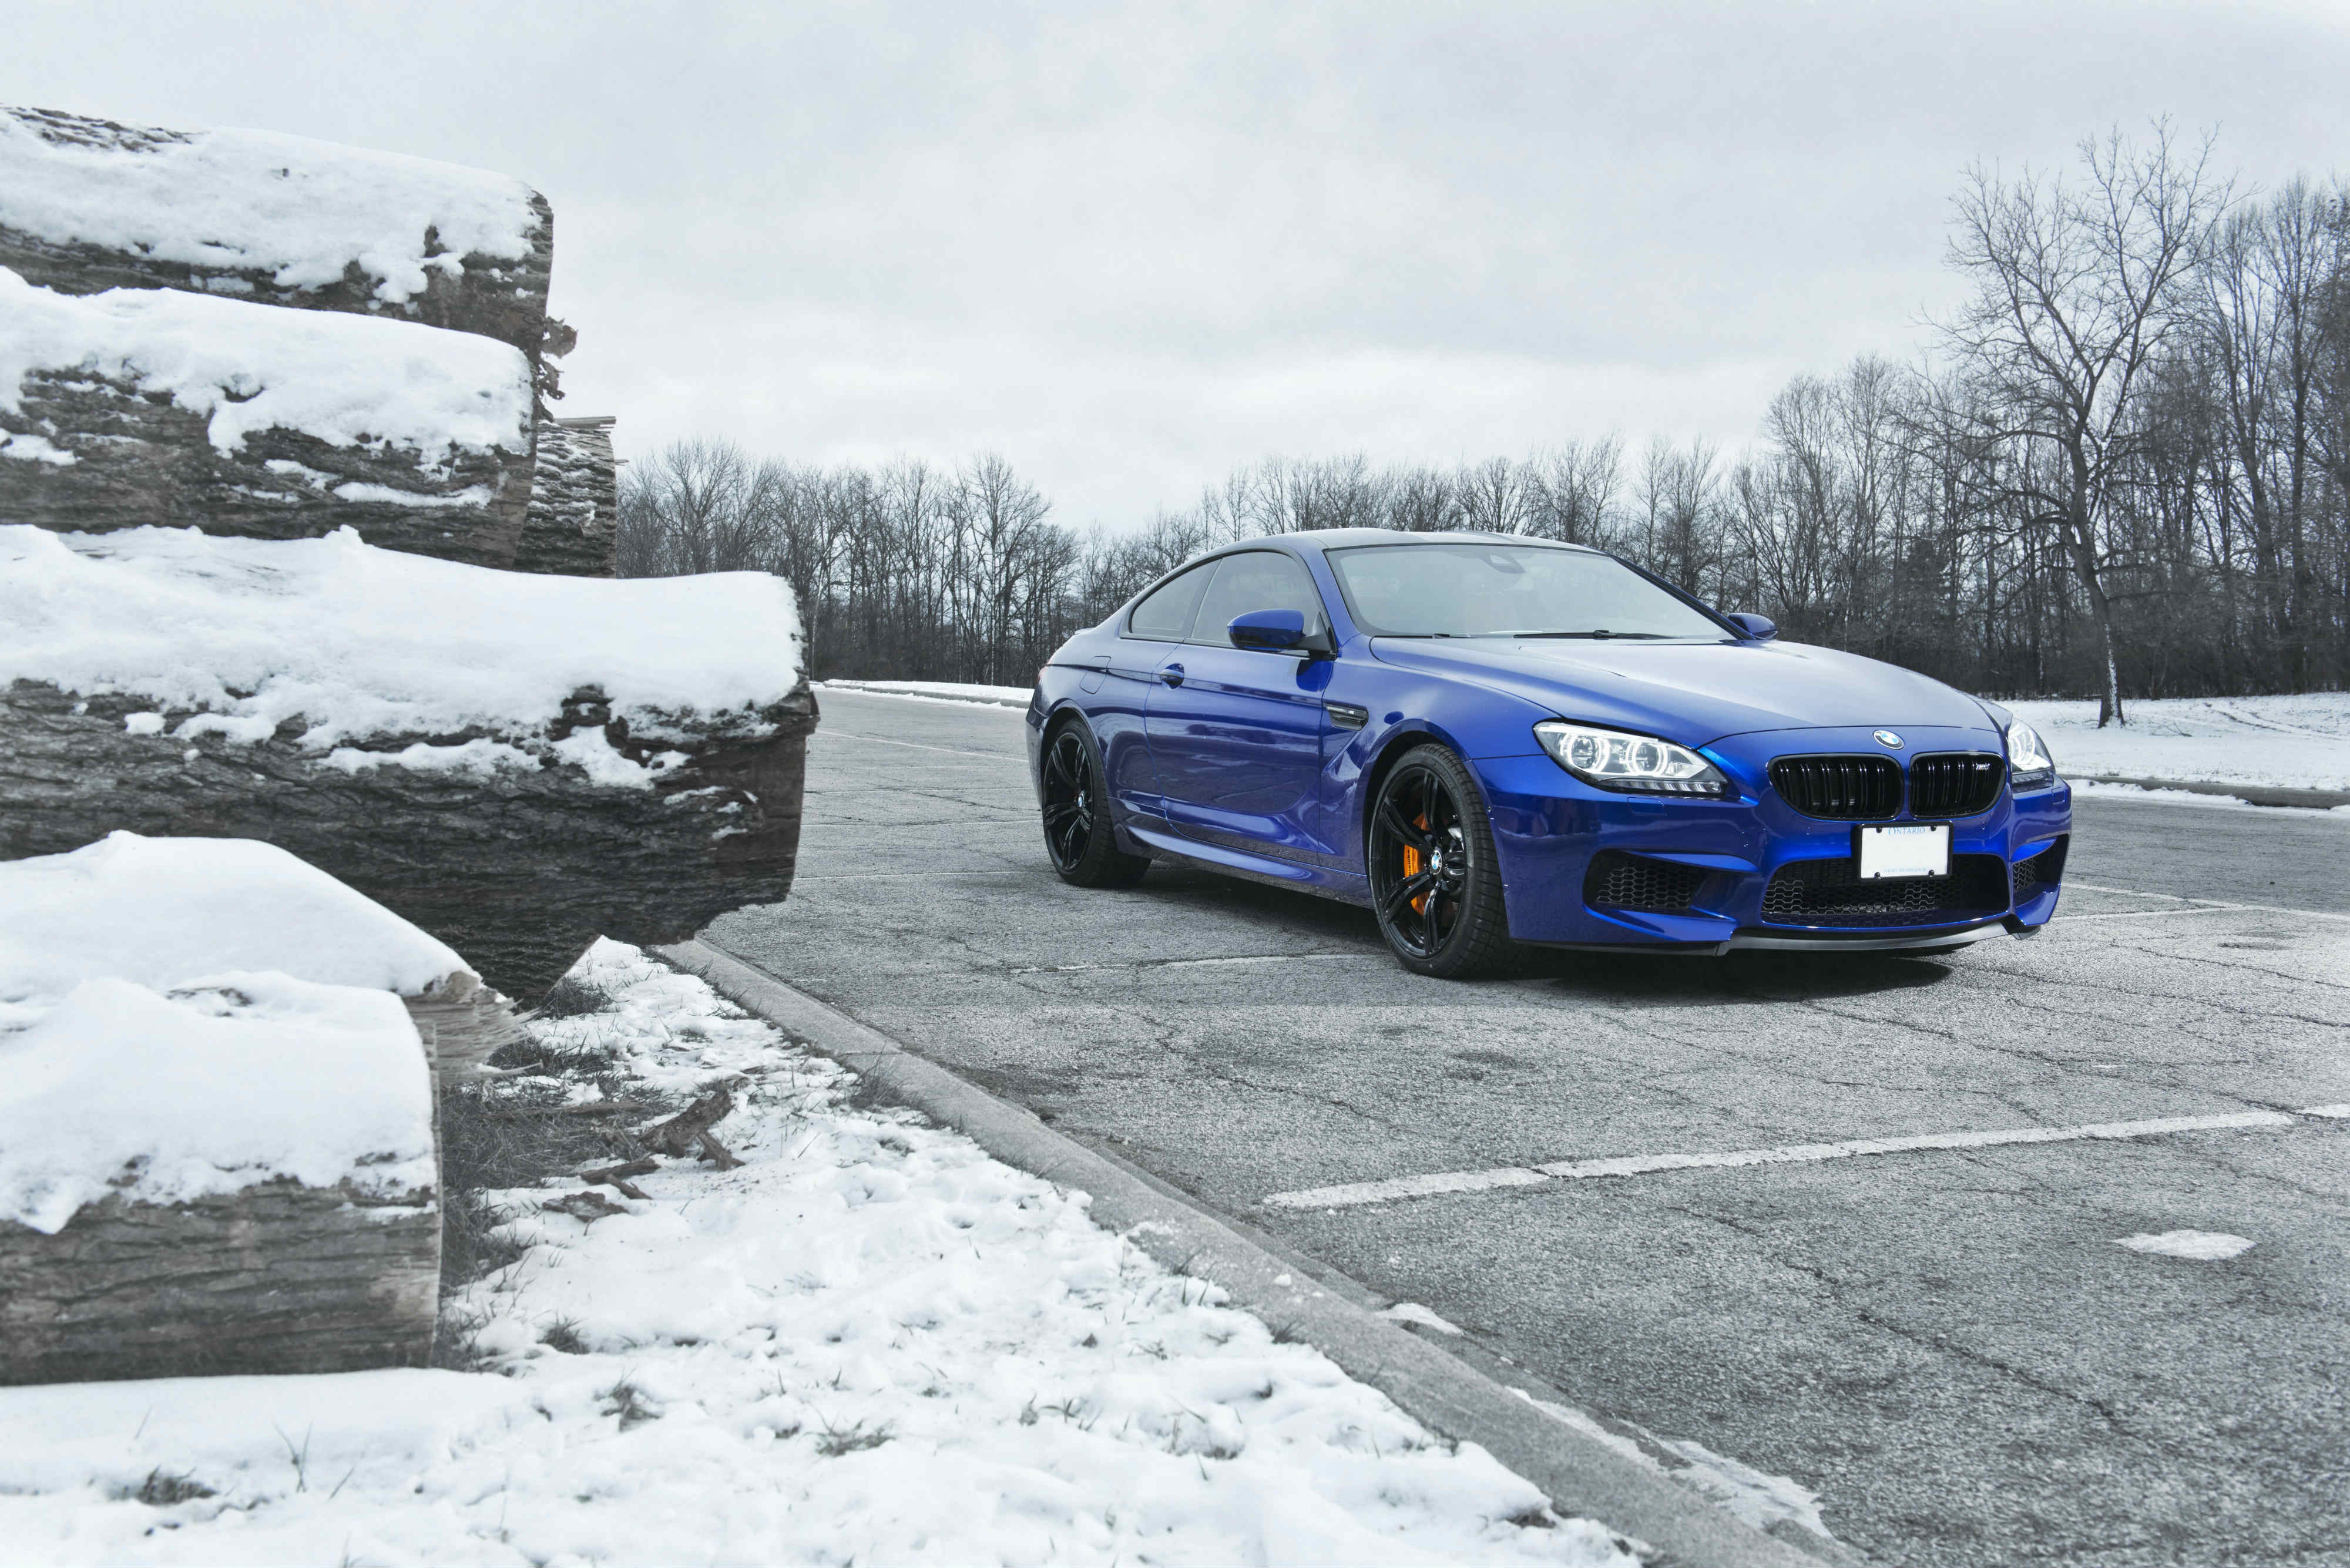 Bmw M6 Wallpapers Archives Page 2 Of 2 Hd Desktop